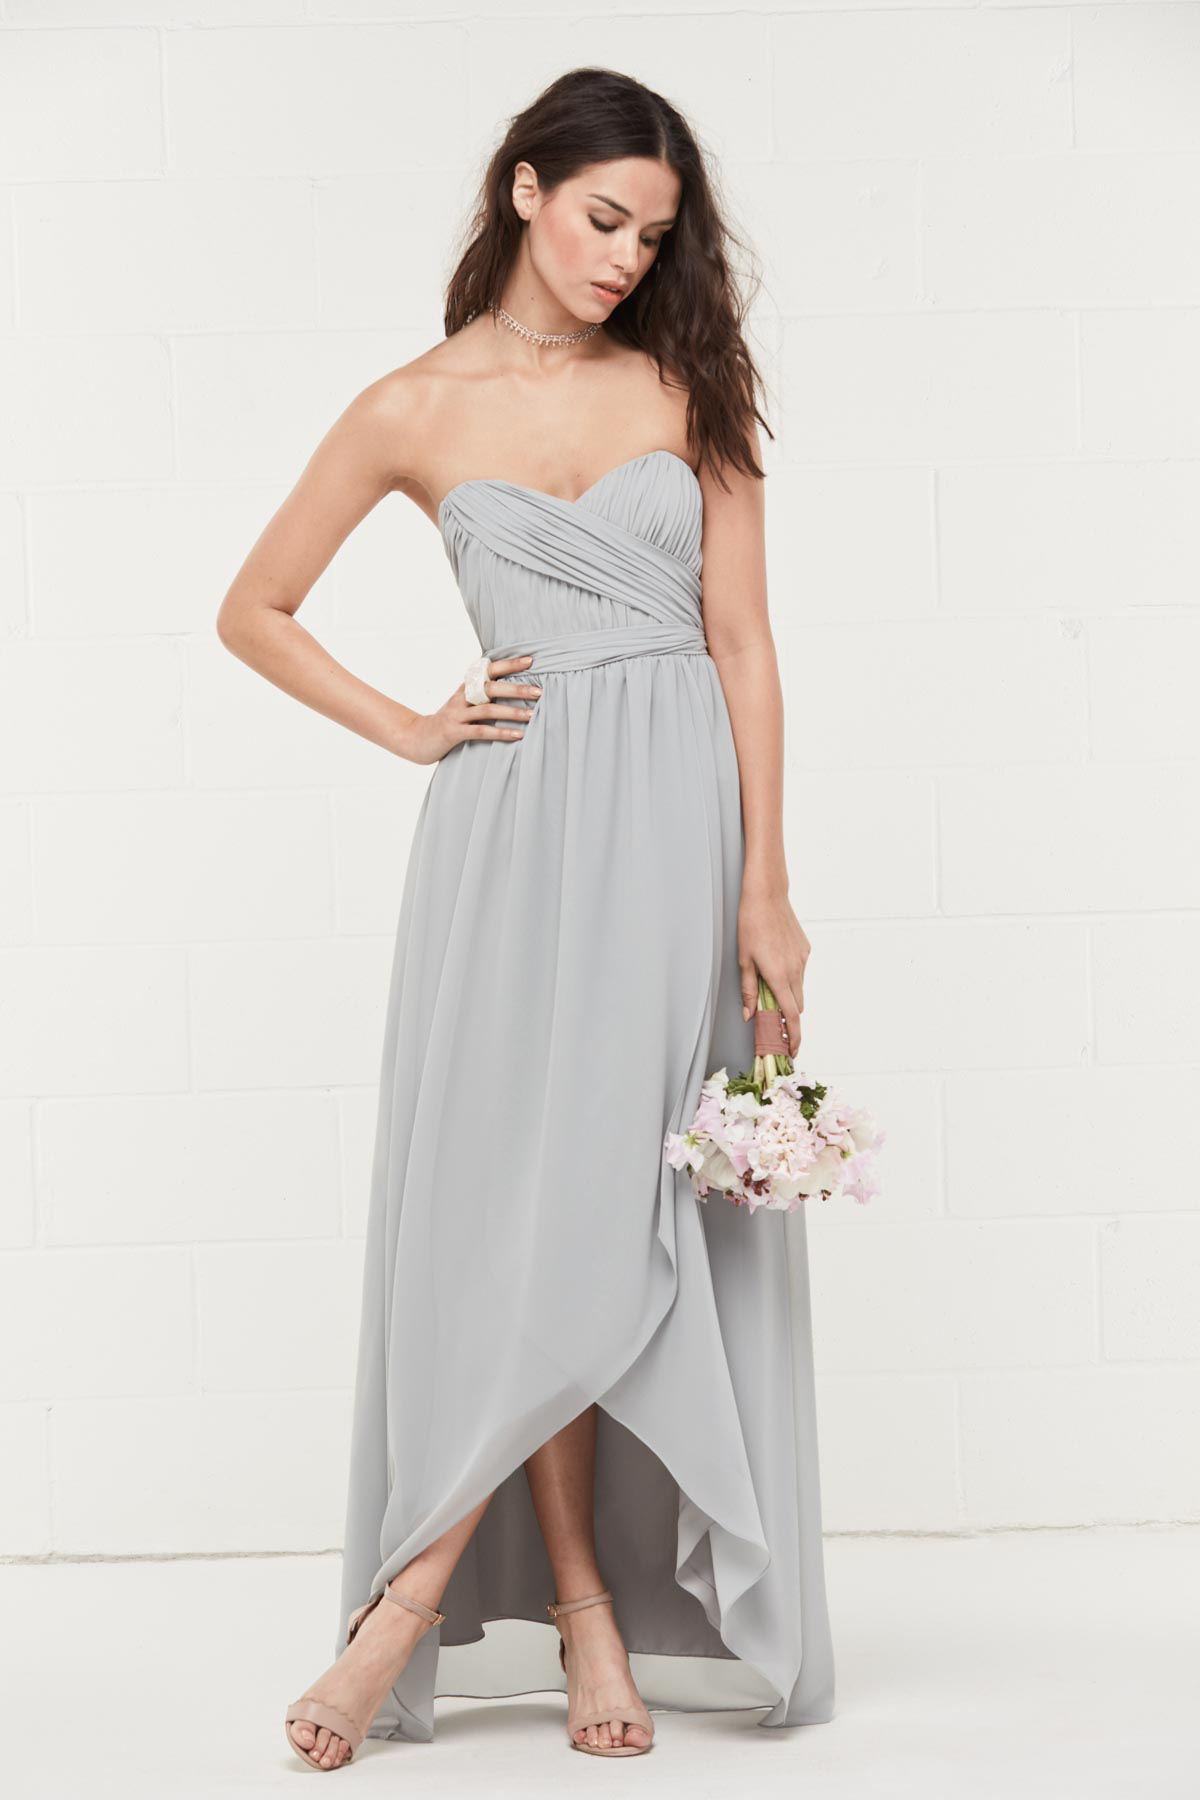 401 Bridesmaids Dress By Watters